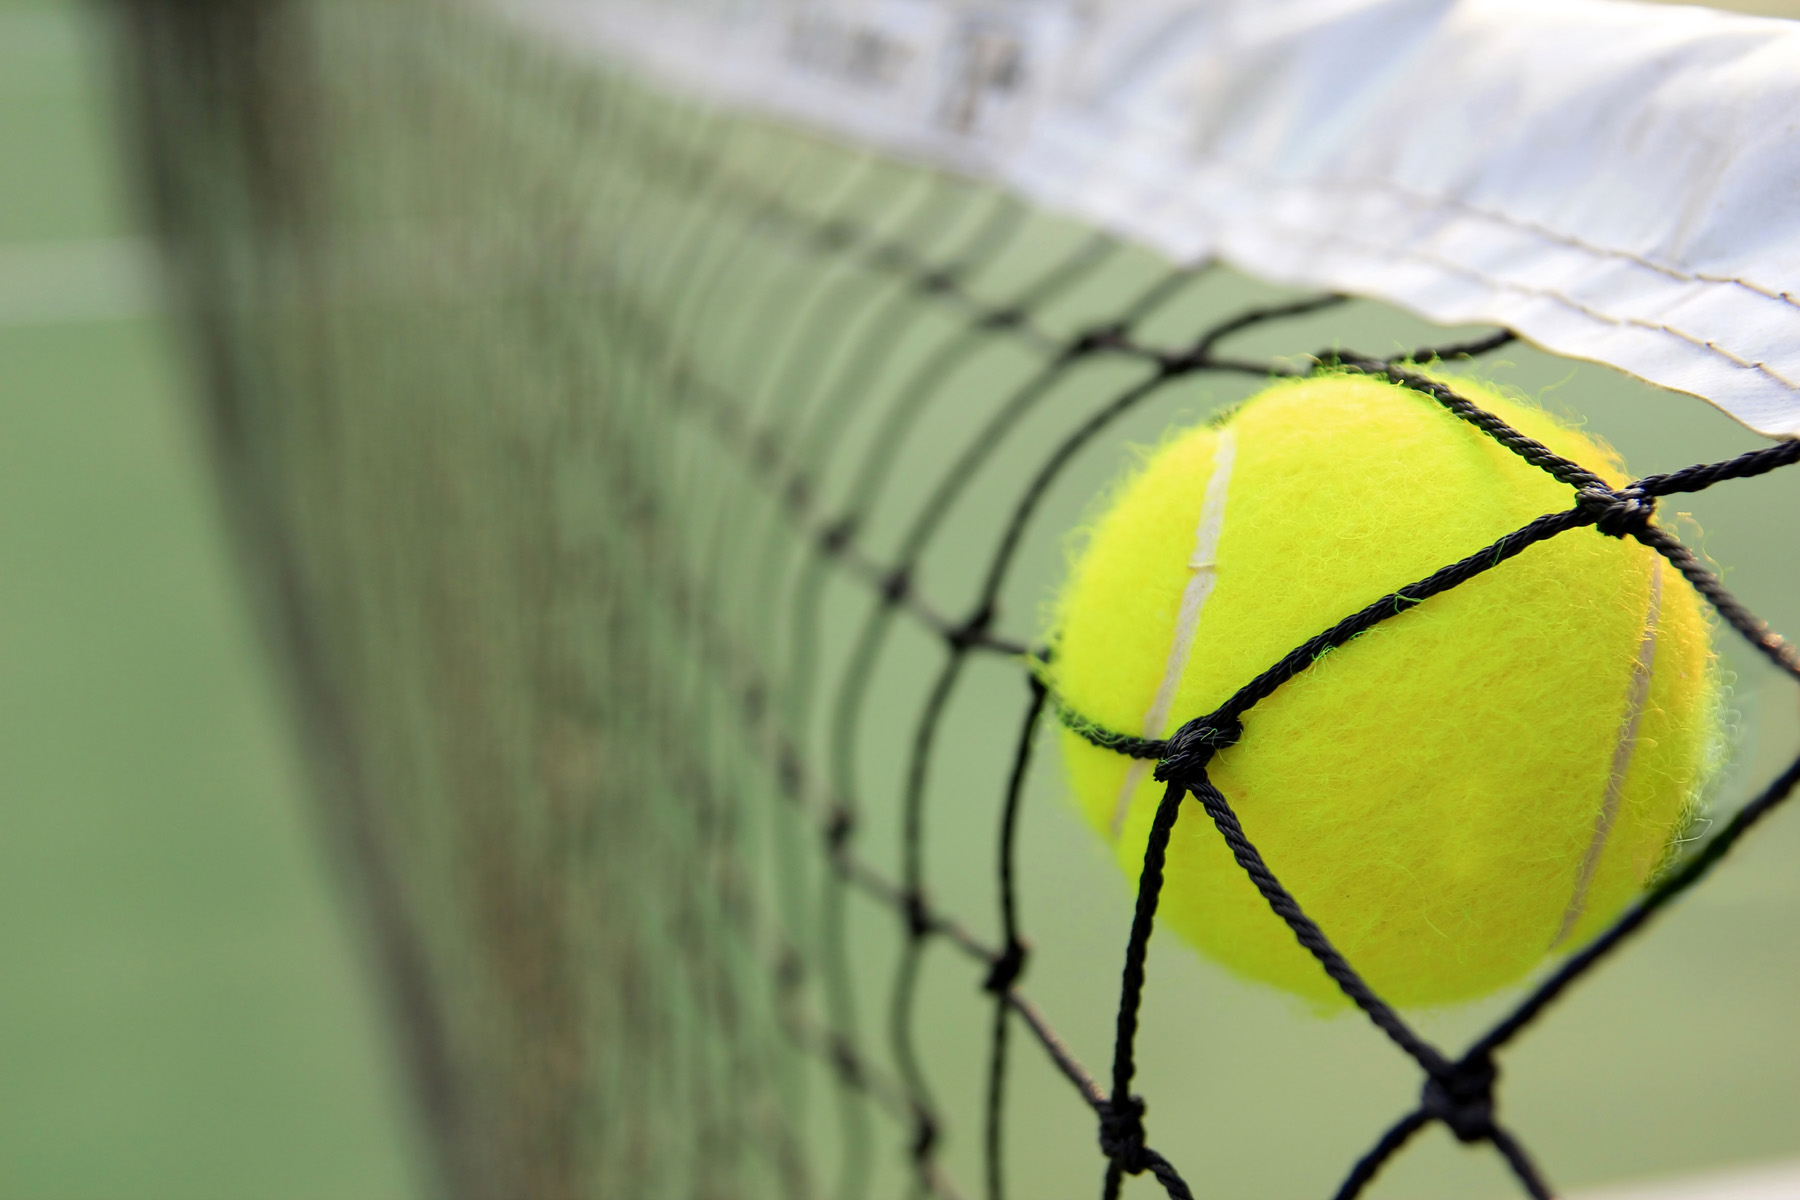 Hit the net on a tennis 51938